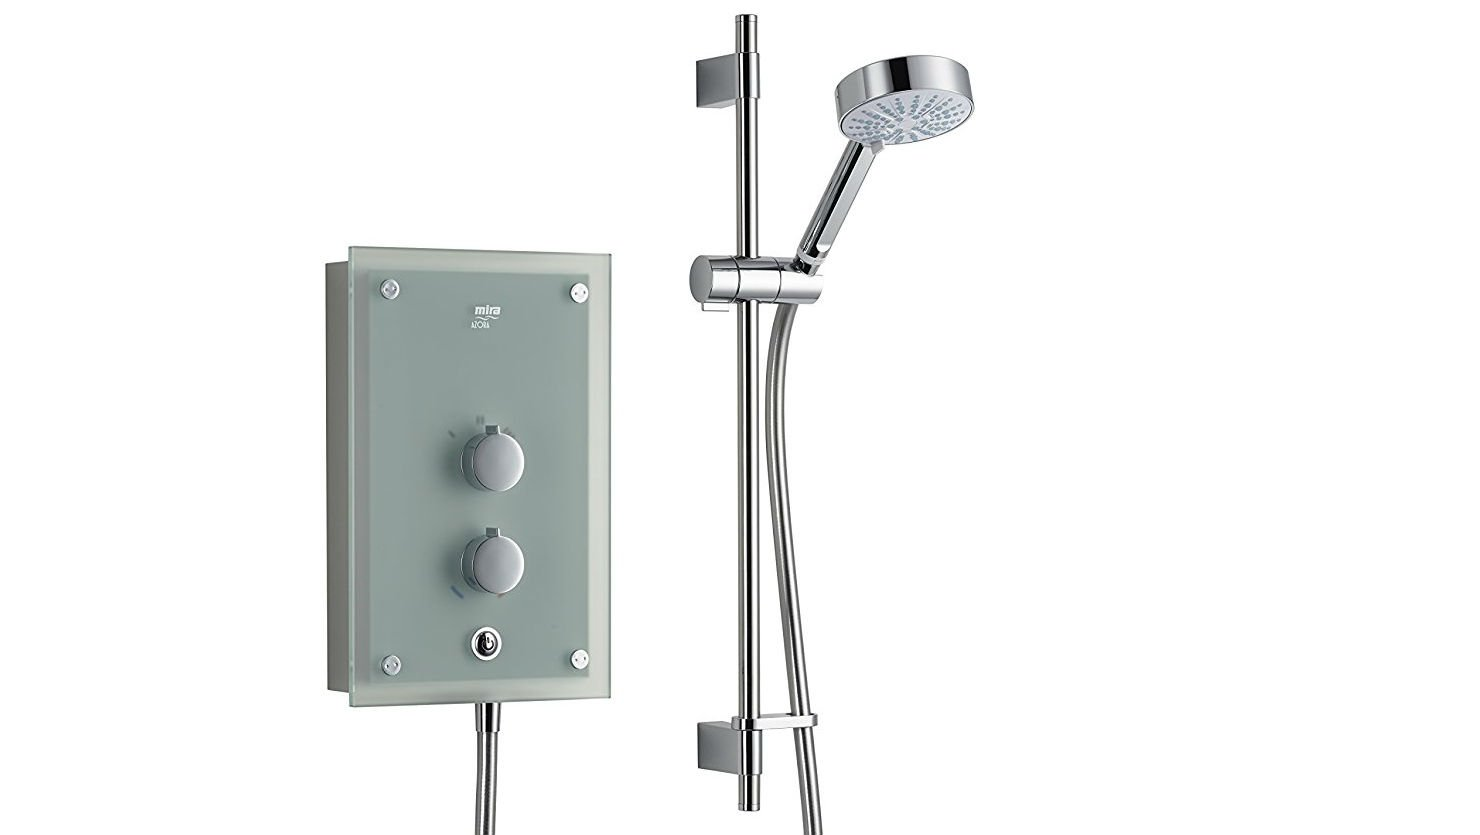 Best Electric Shower The Showers That Will Leave You